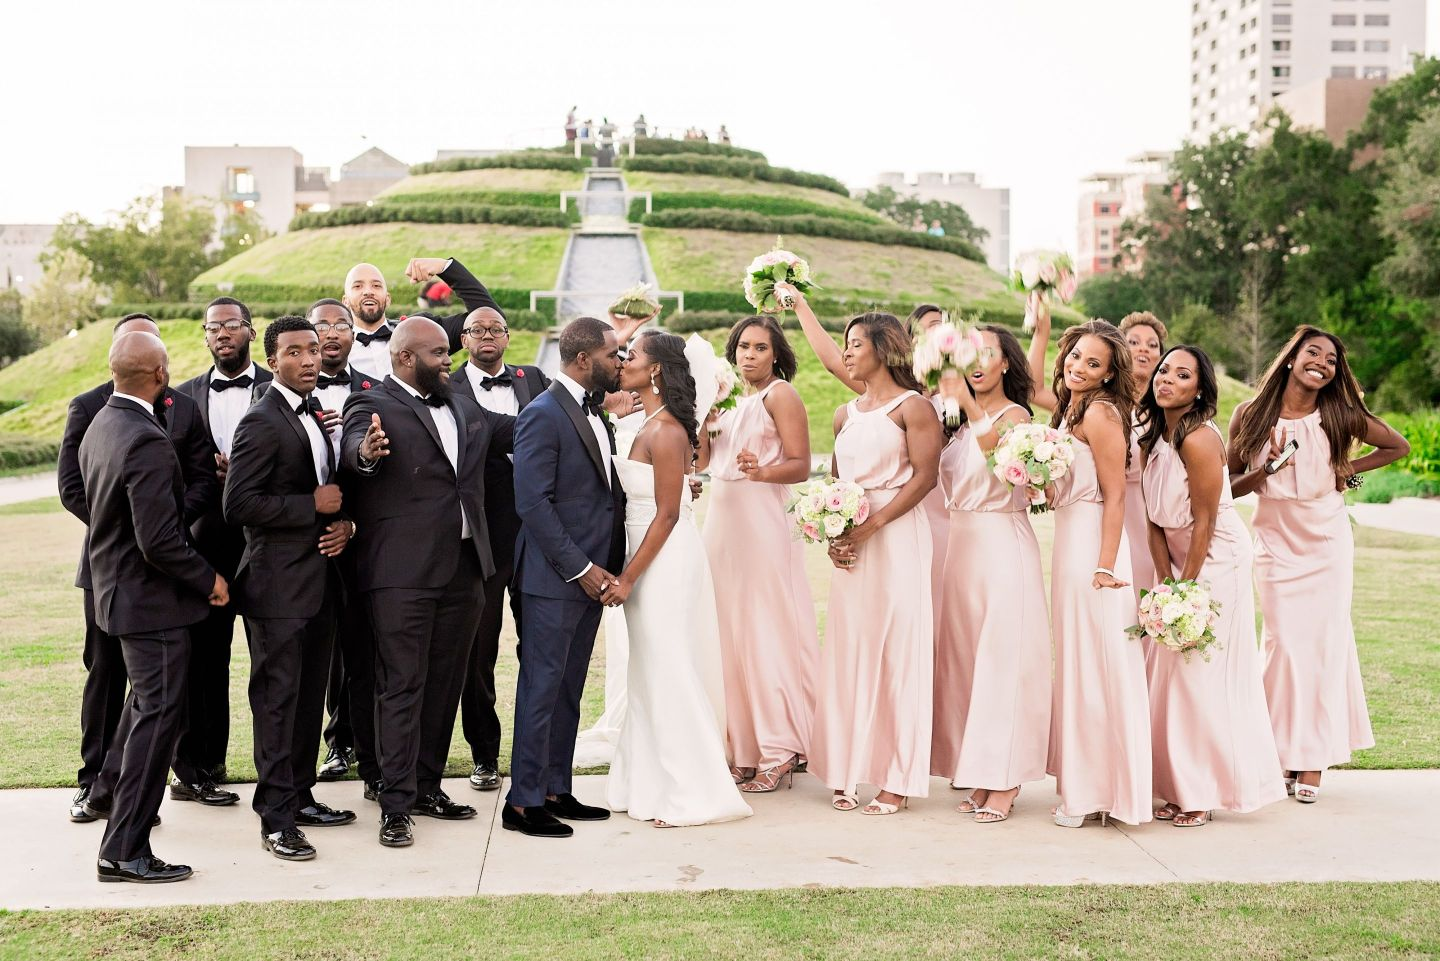 Andre-and-Gina-Pharris-Photography-0062 Houston, TX Wedding at the Buffalo Soldier Museum